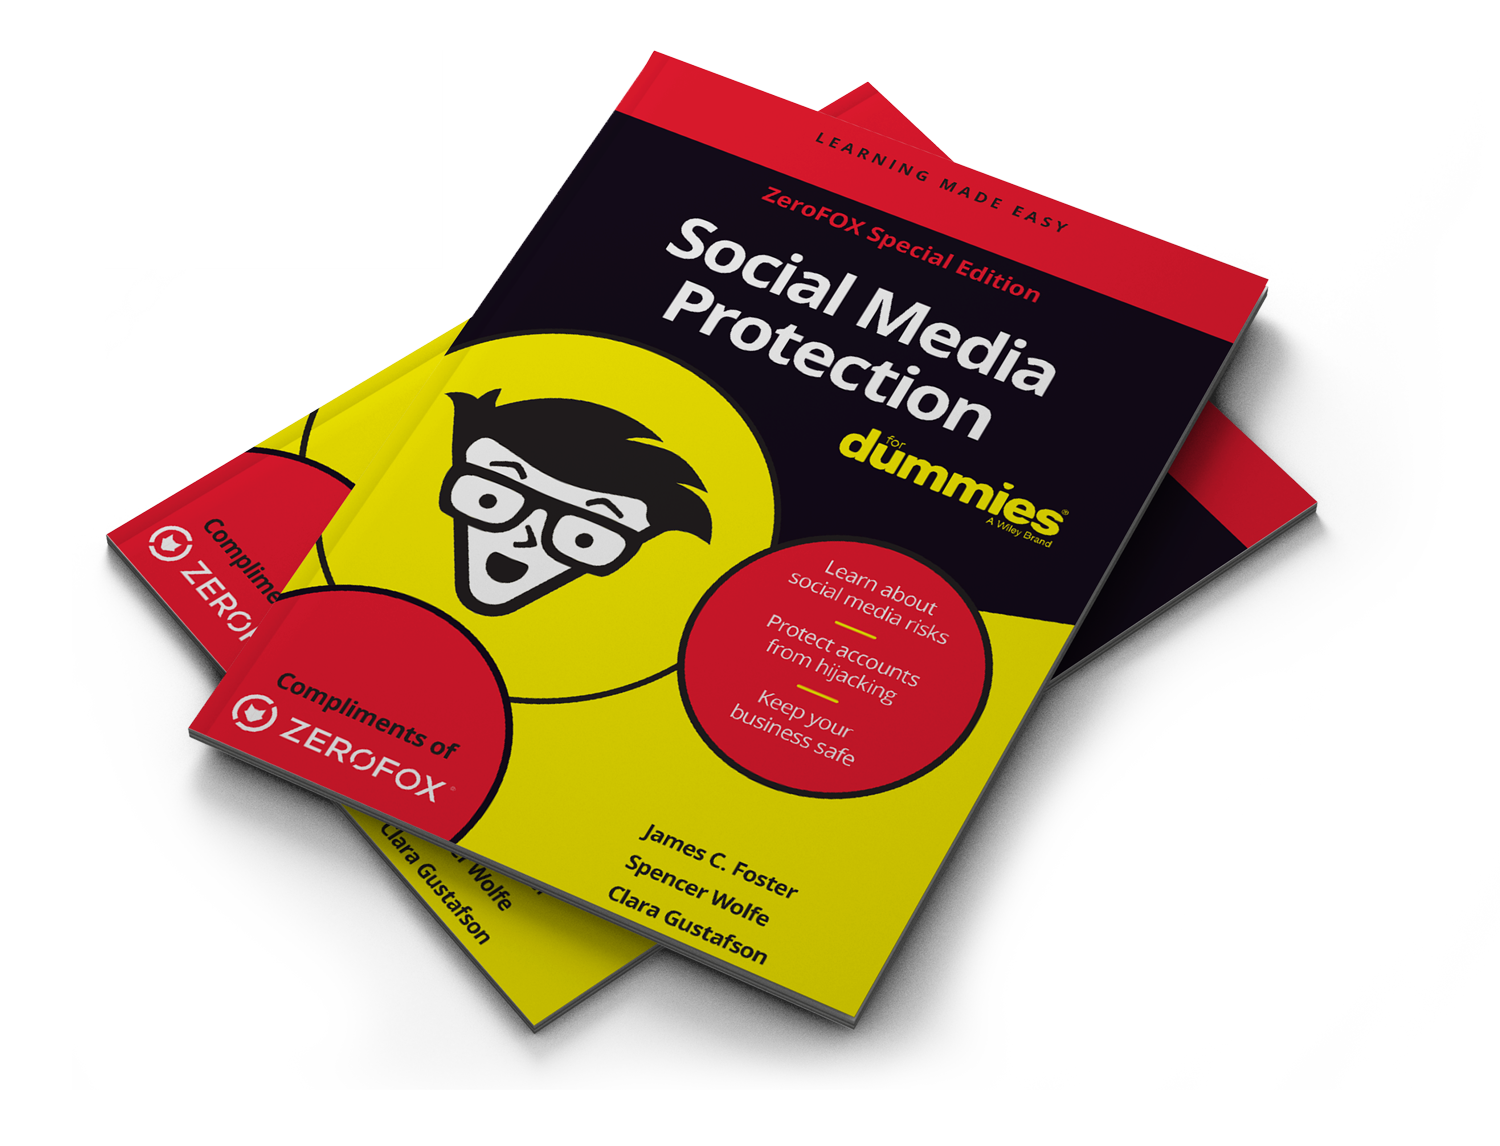 Social Media Protection for Dummies